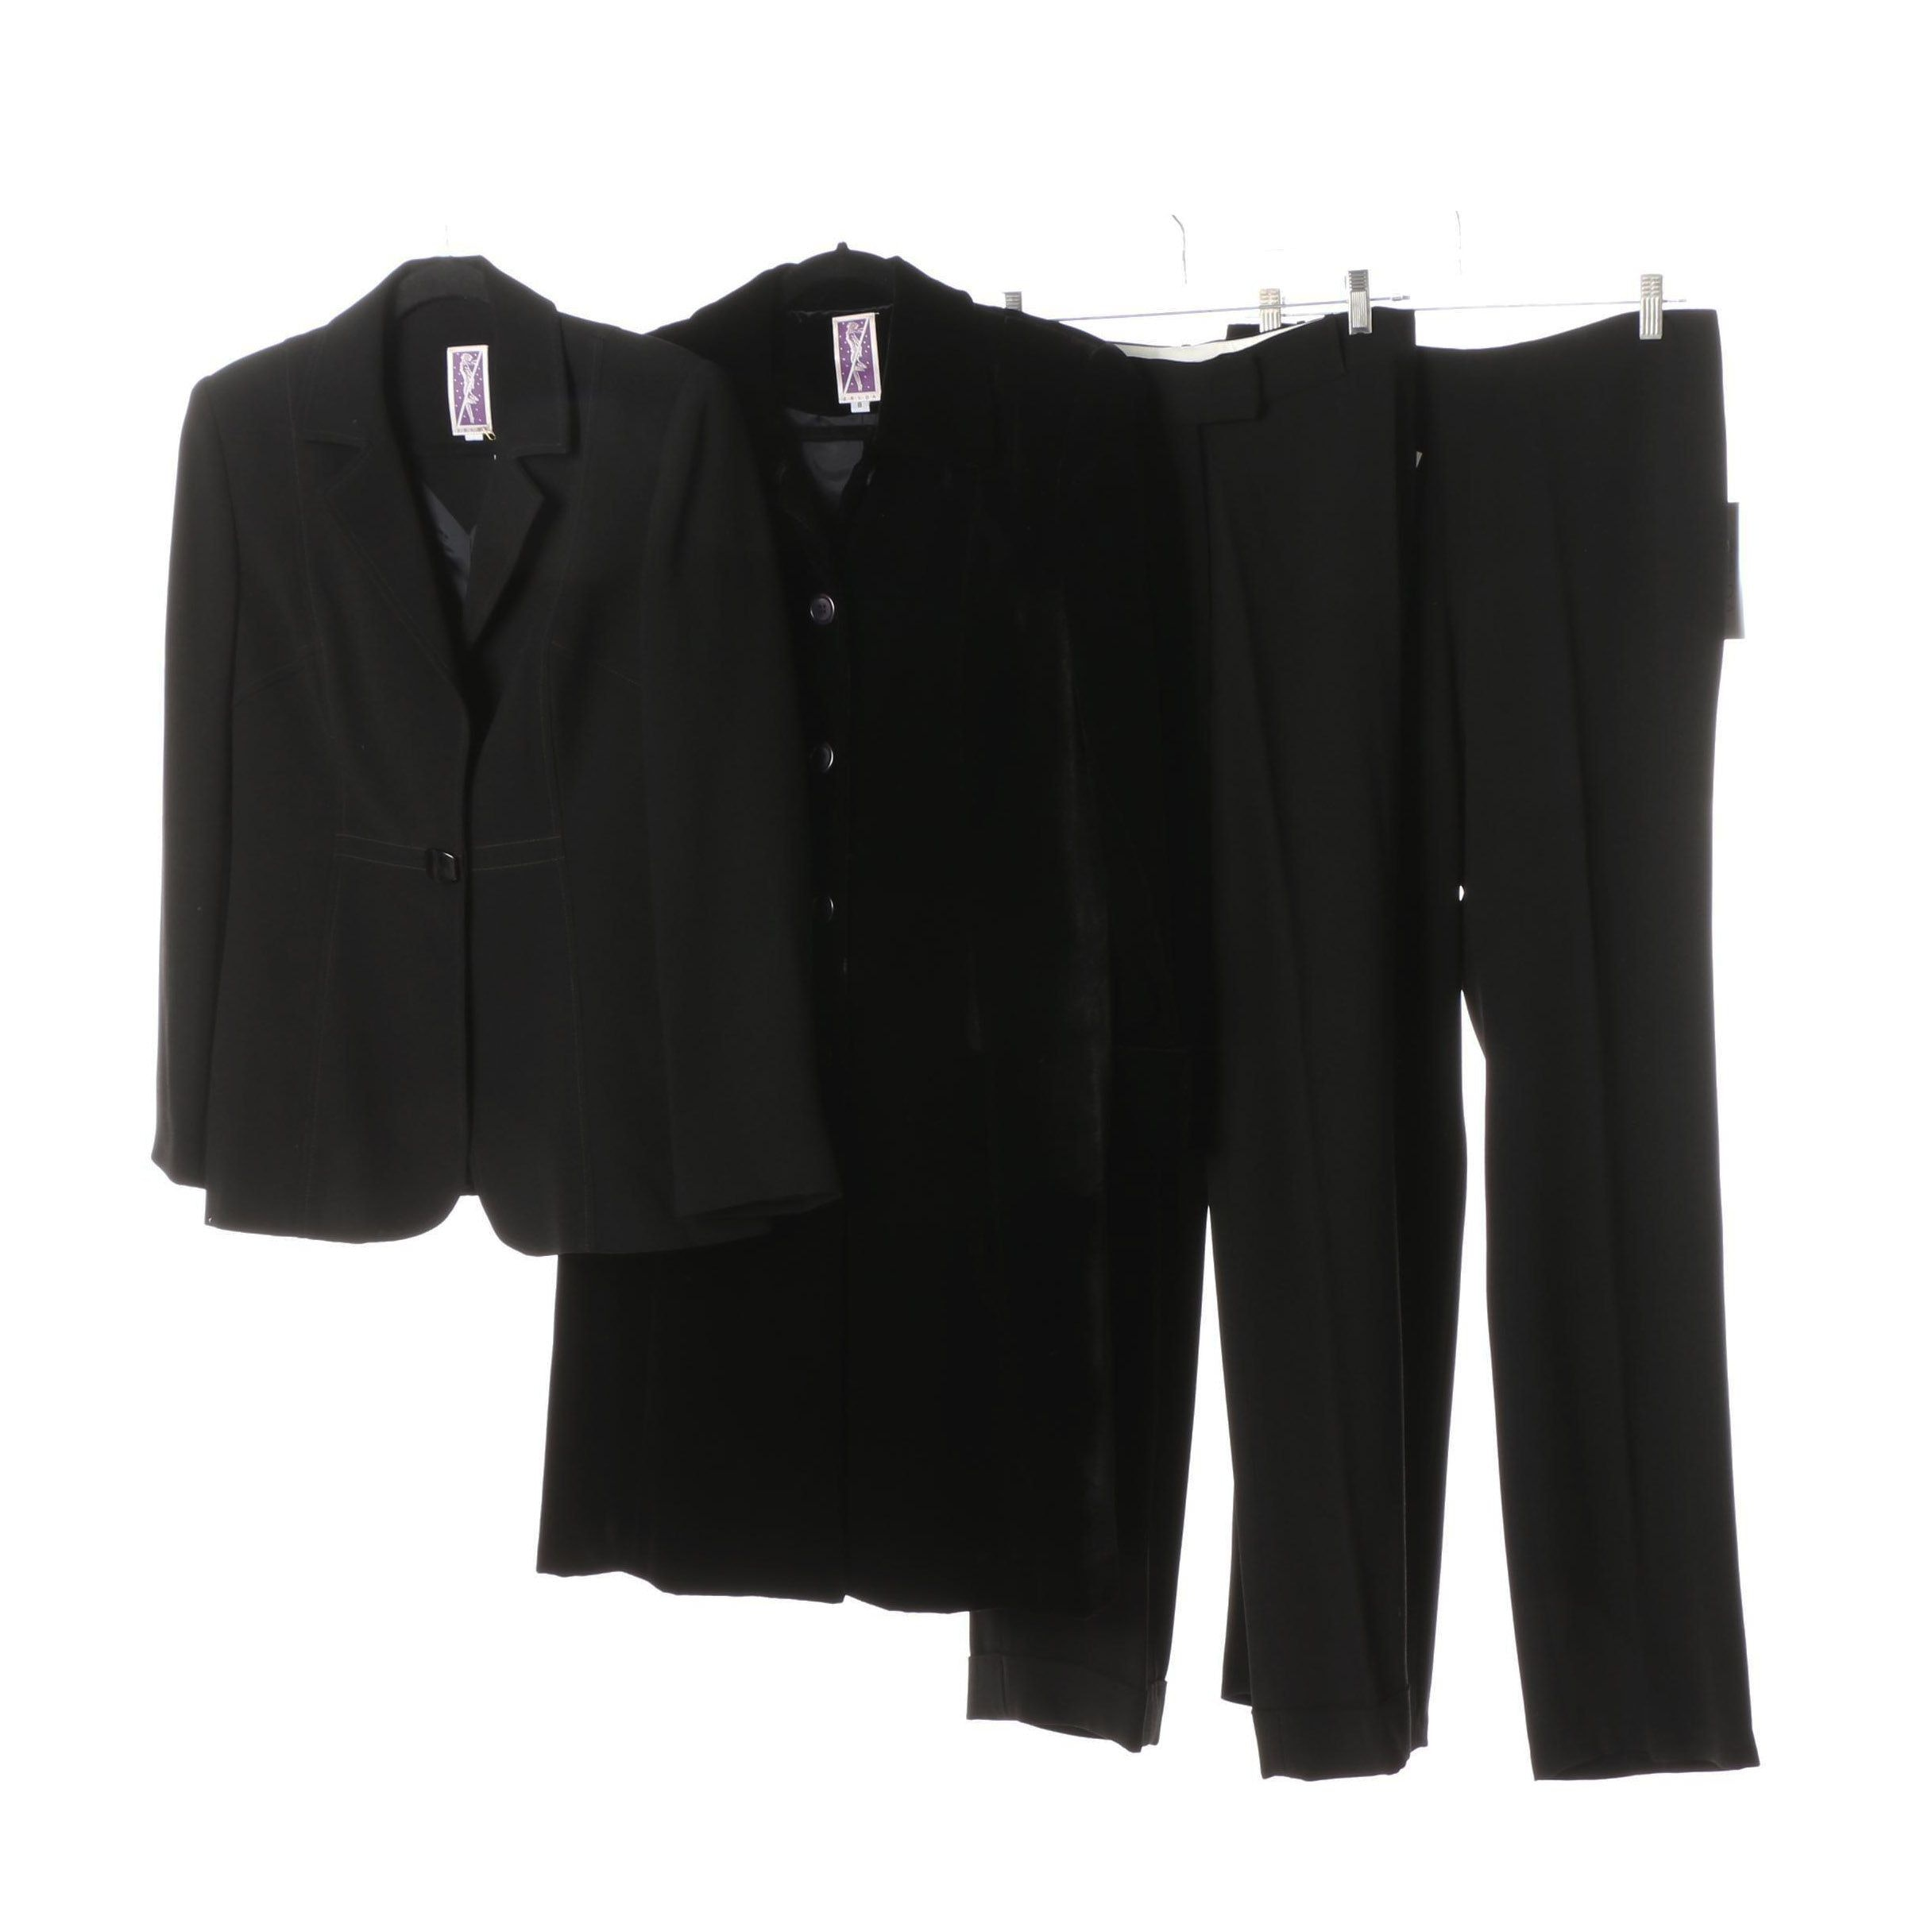 Women's Zelda Collection Black Pantsuit and Separates